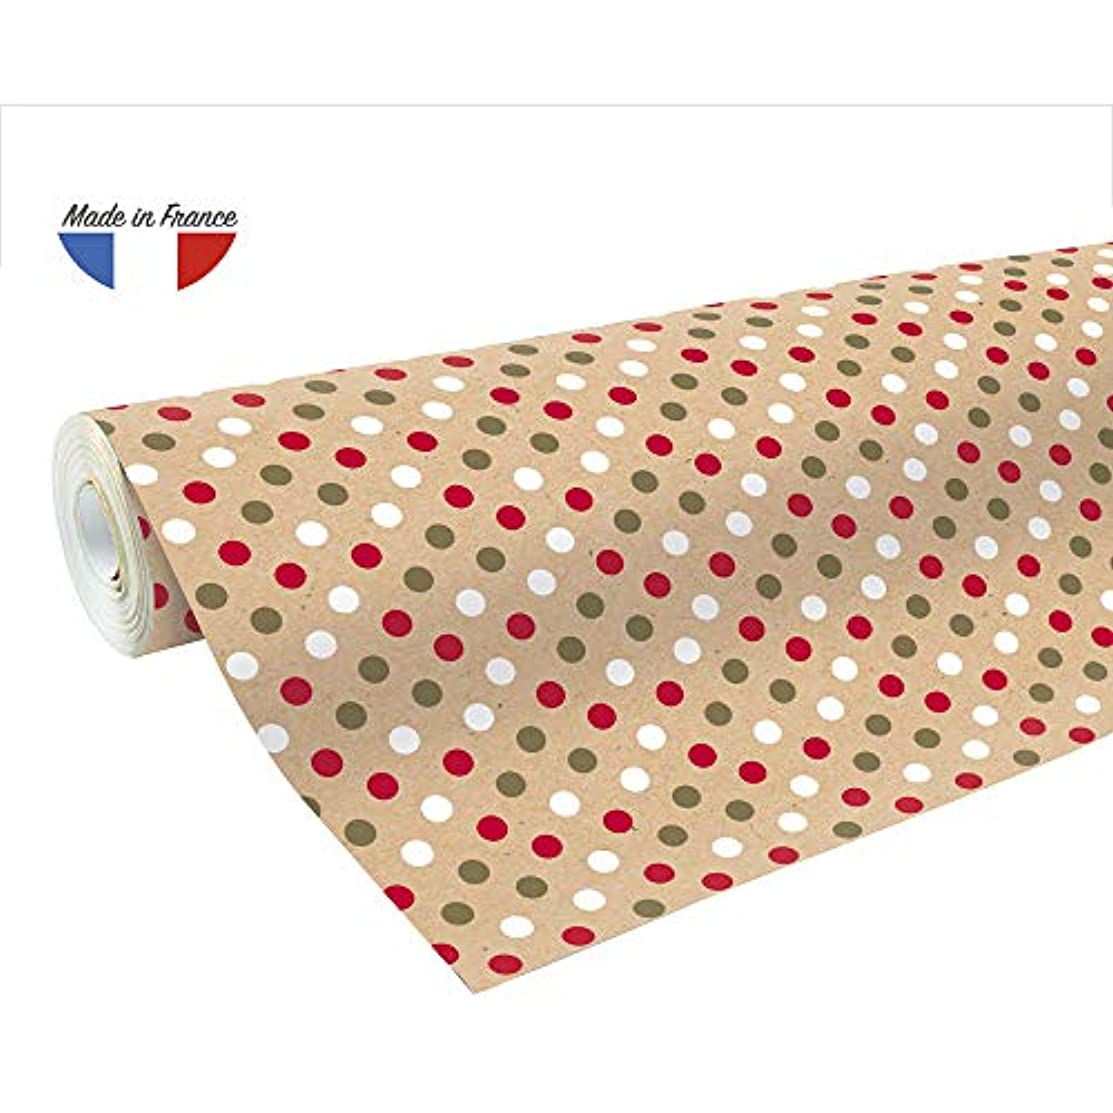 Clairefontaine 50 m x 0.70 m Recycled Kraft Long Roll Wrapping Paper, Dots